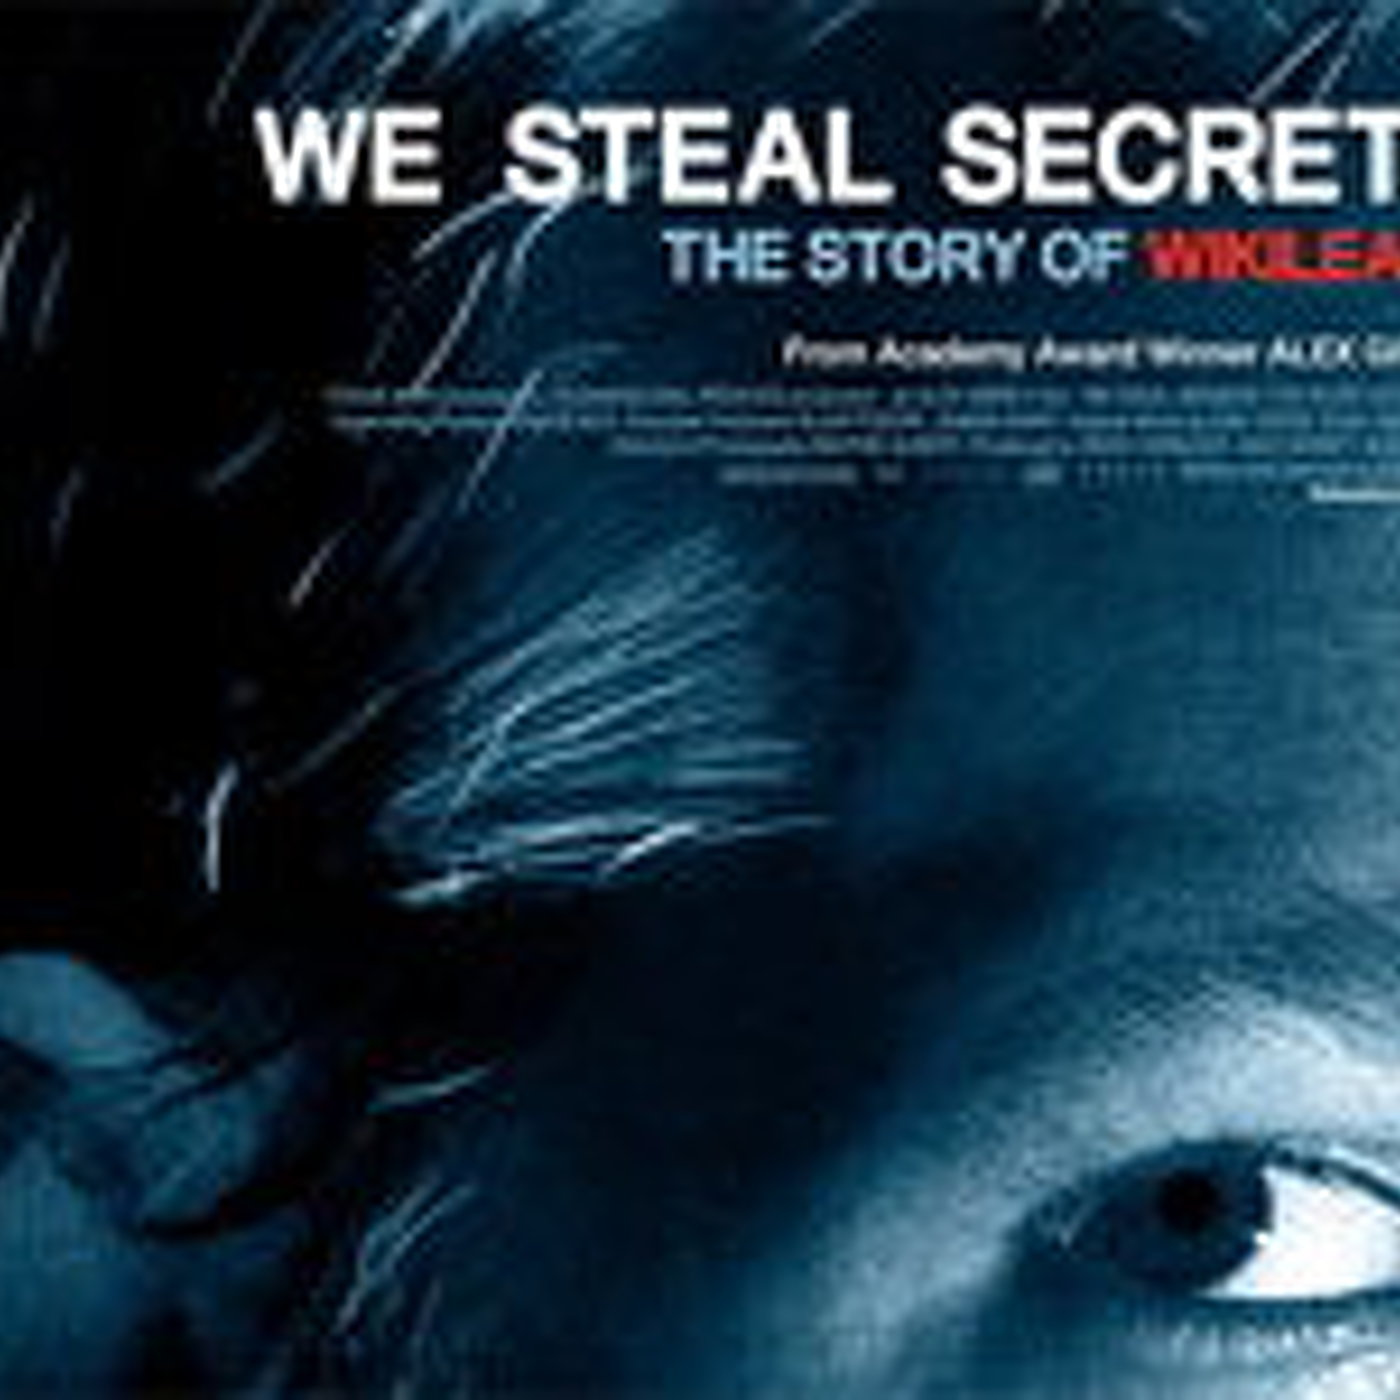 We steal secrets, la historia de Wikileaks